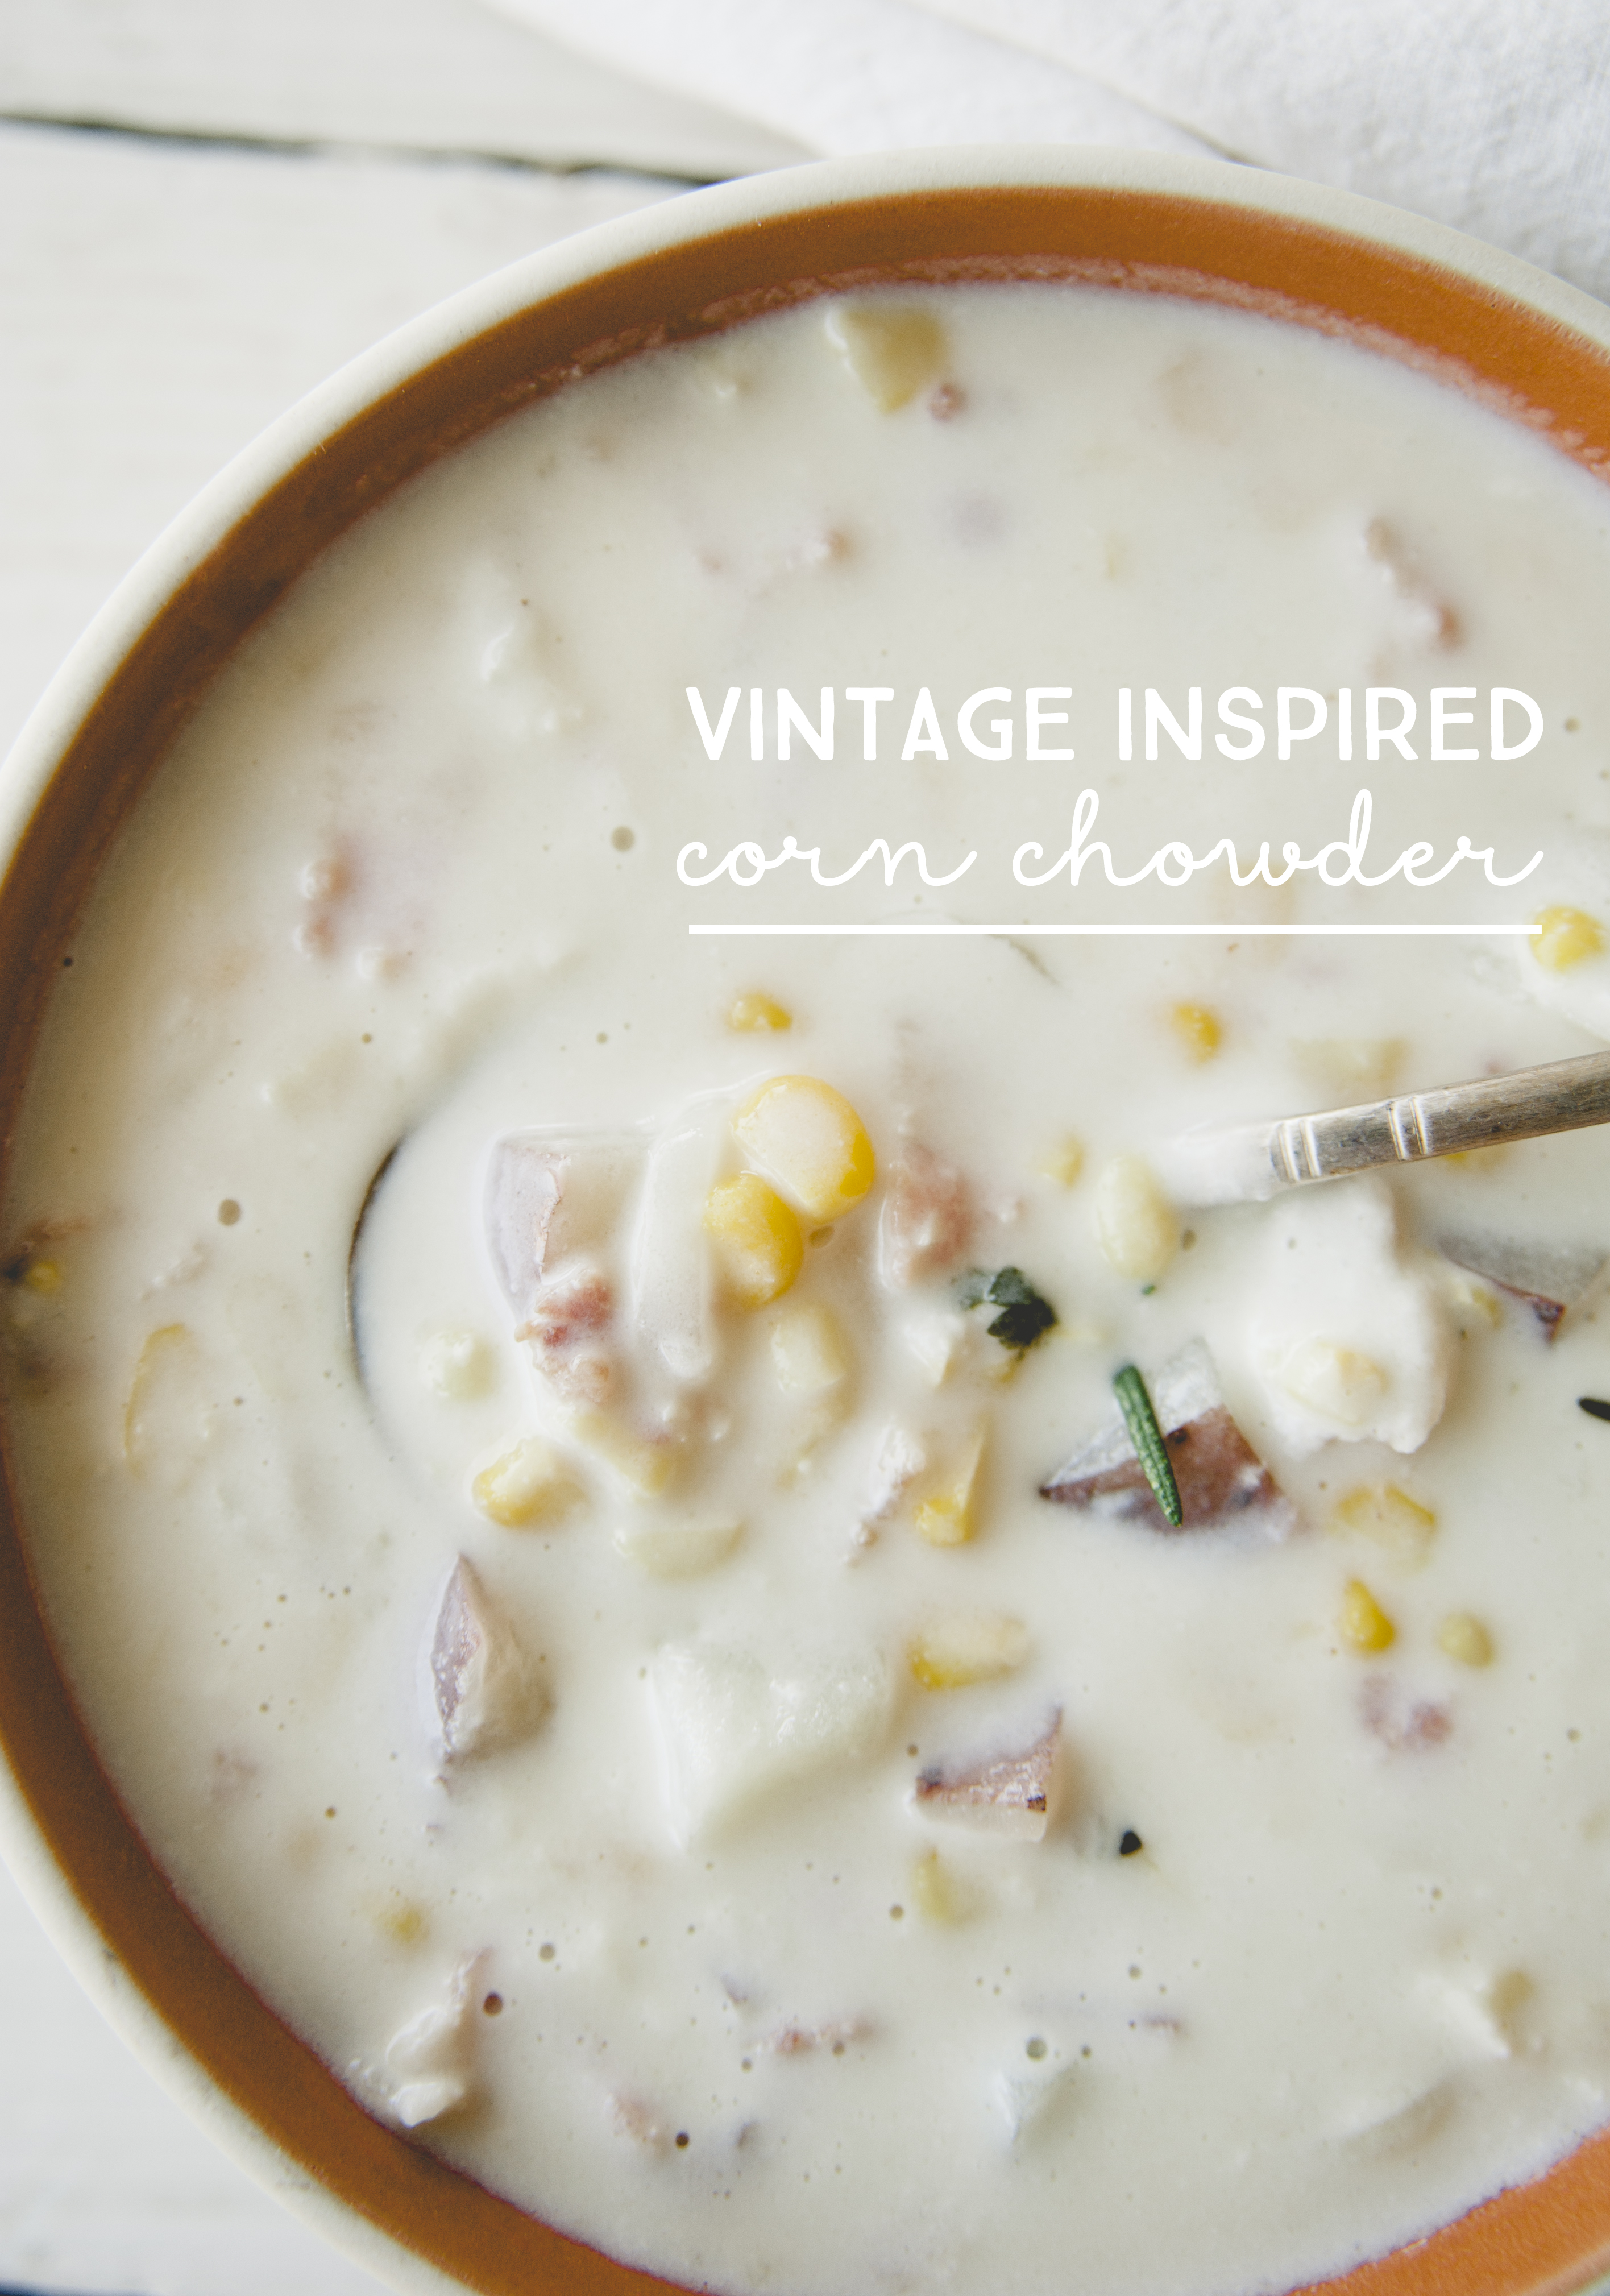 VINTAGE INSPIRED CORN CHOWER // THE KITCHY KITCHEN